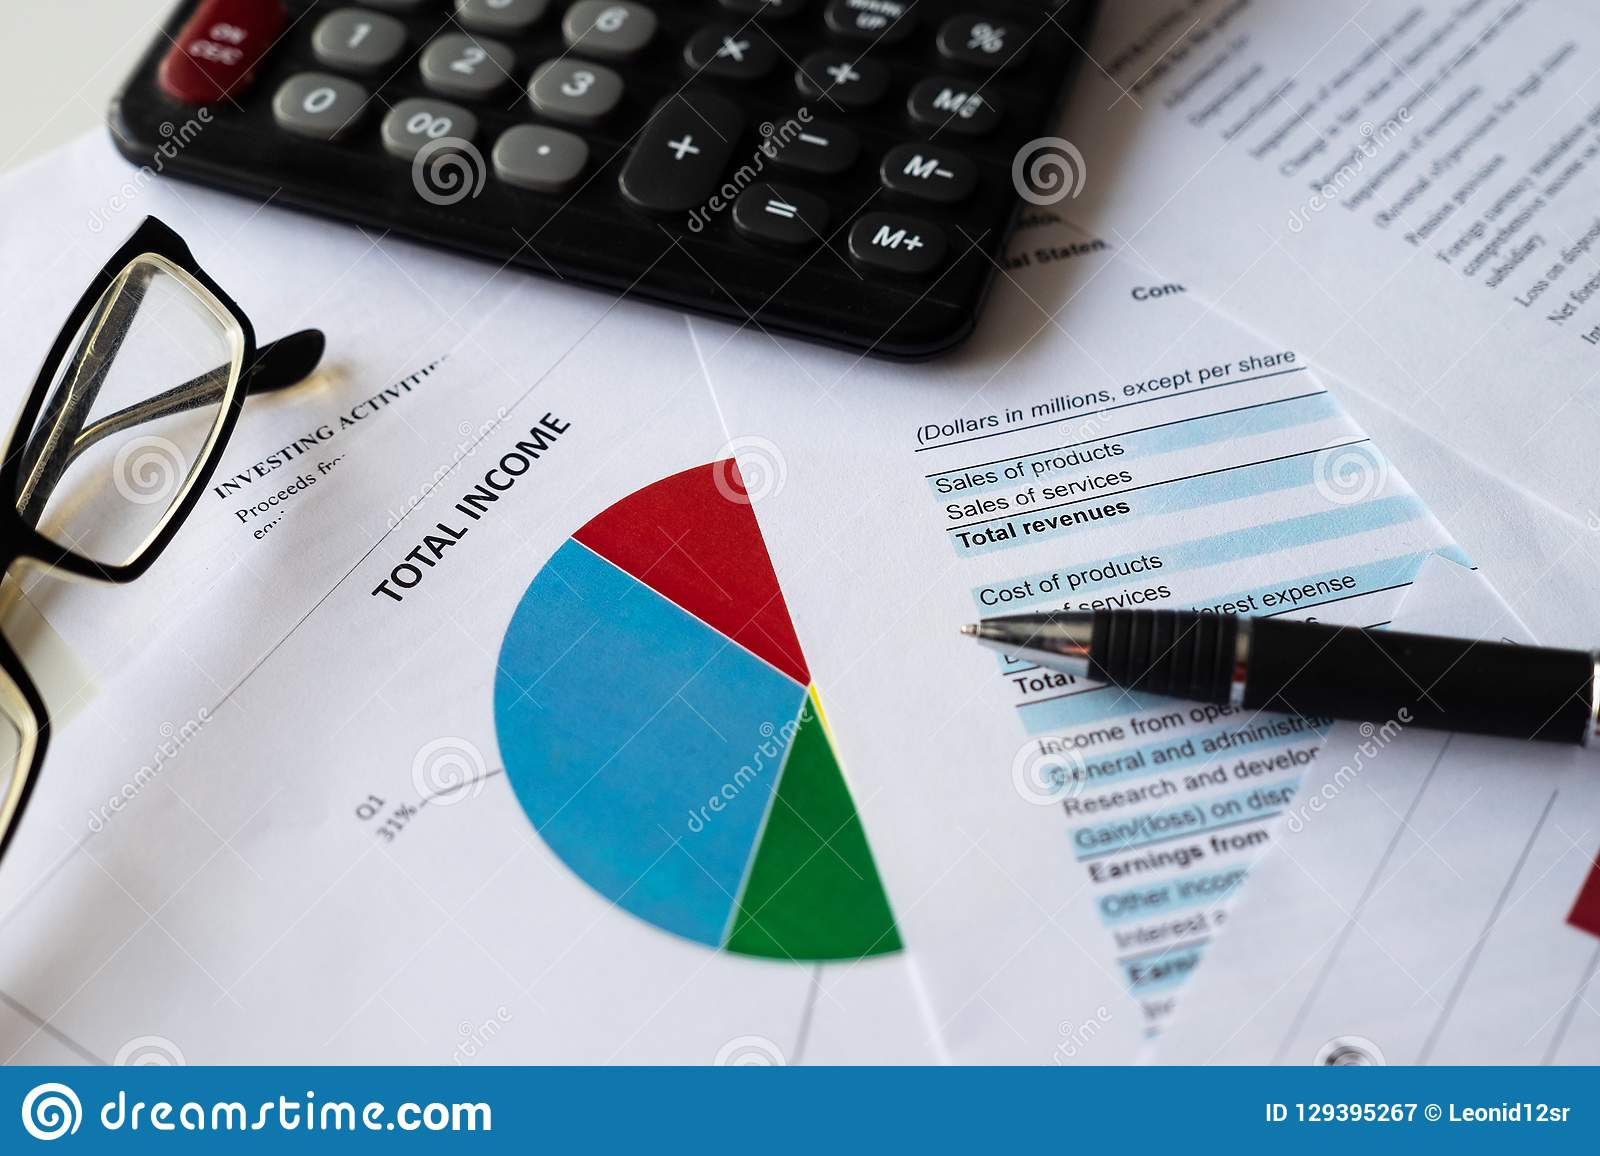 Financial accounting stock market with graphs analysis